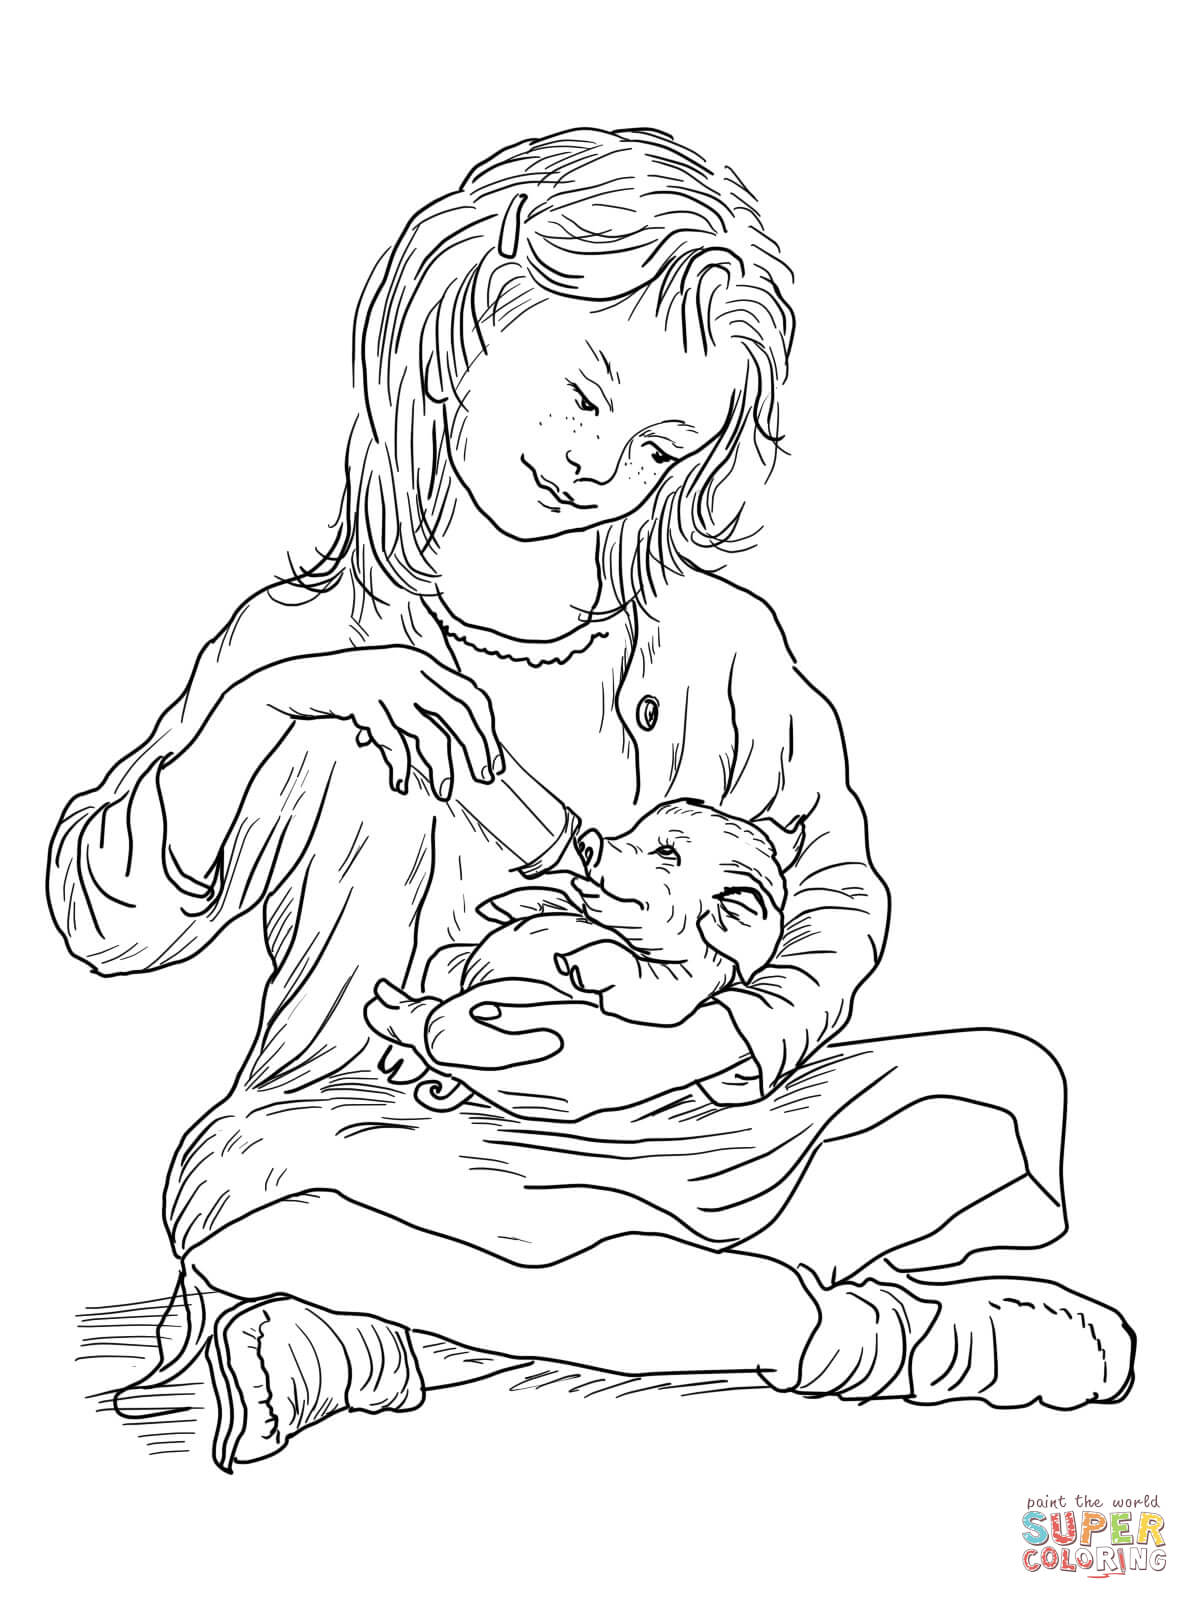 Fern Feeding Wilbur Coloring Page